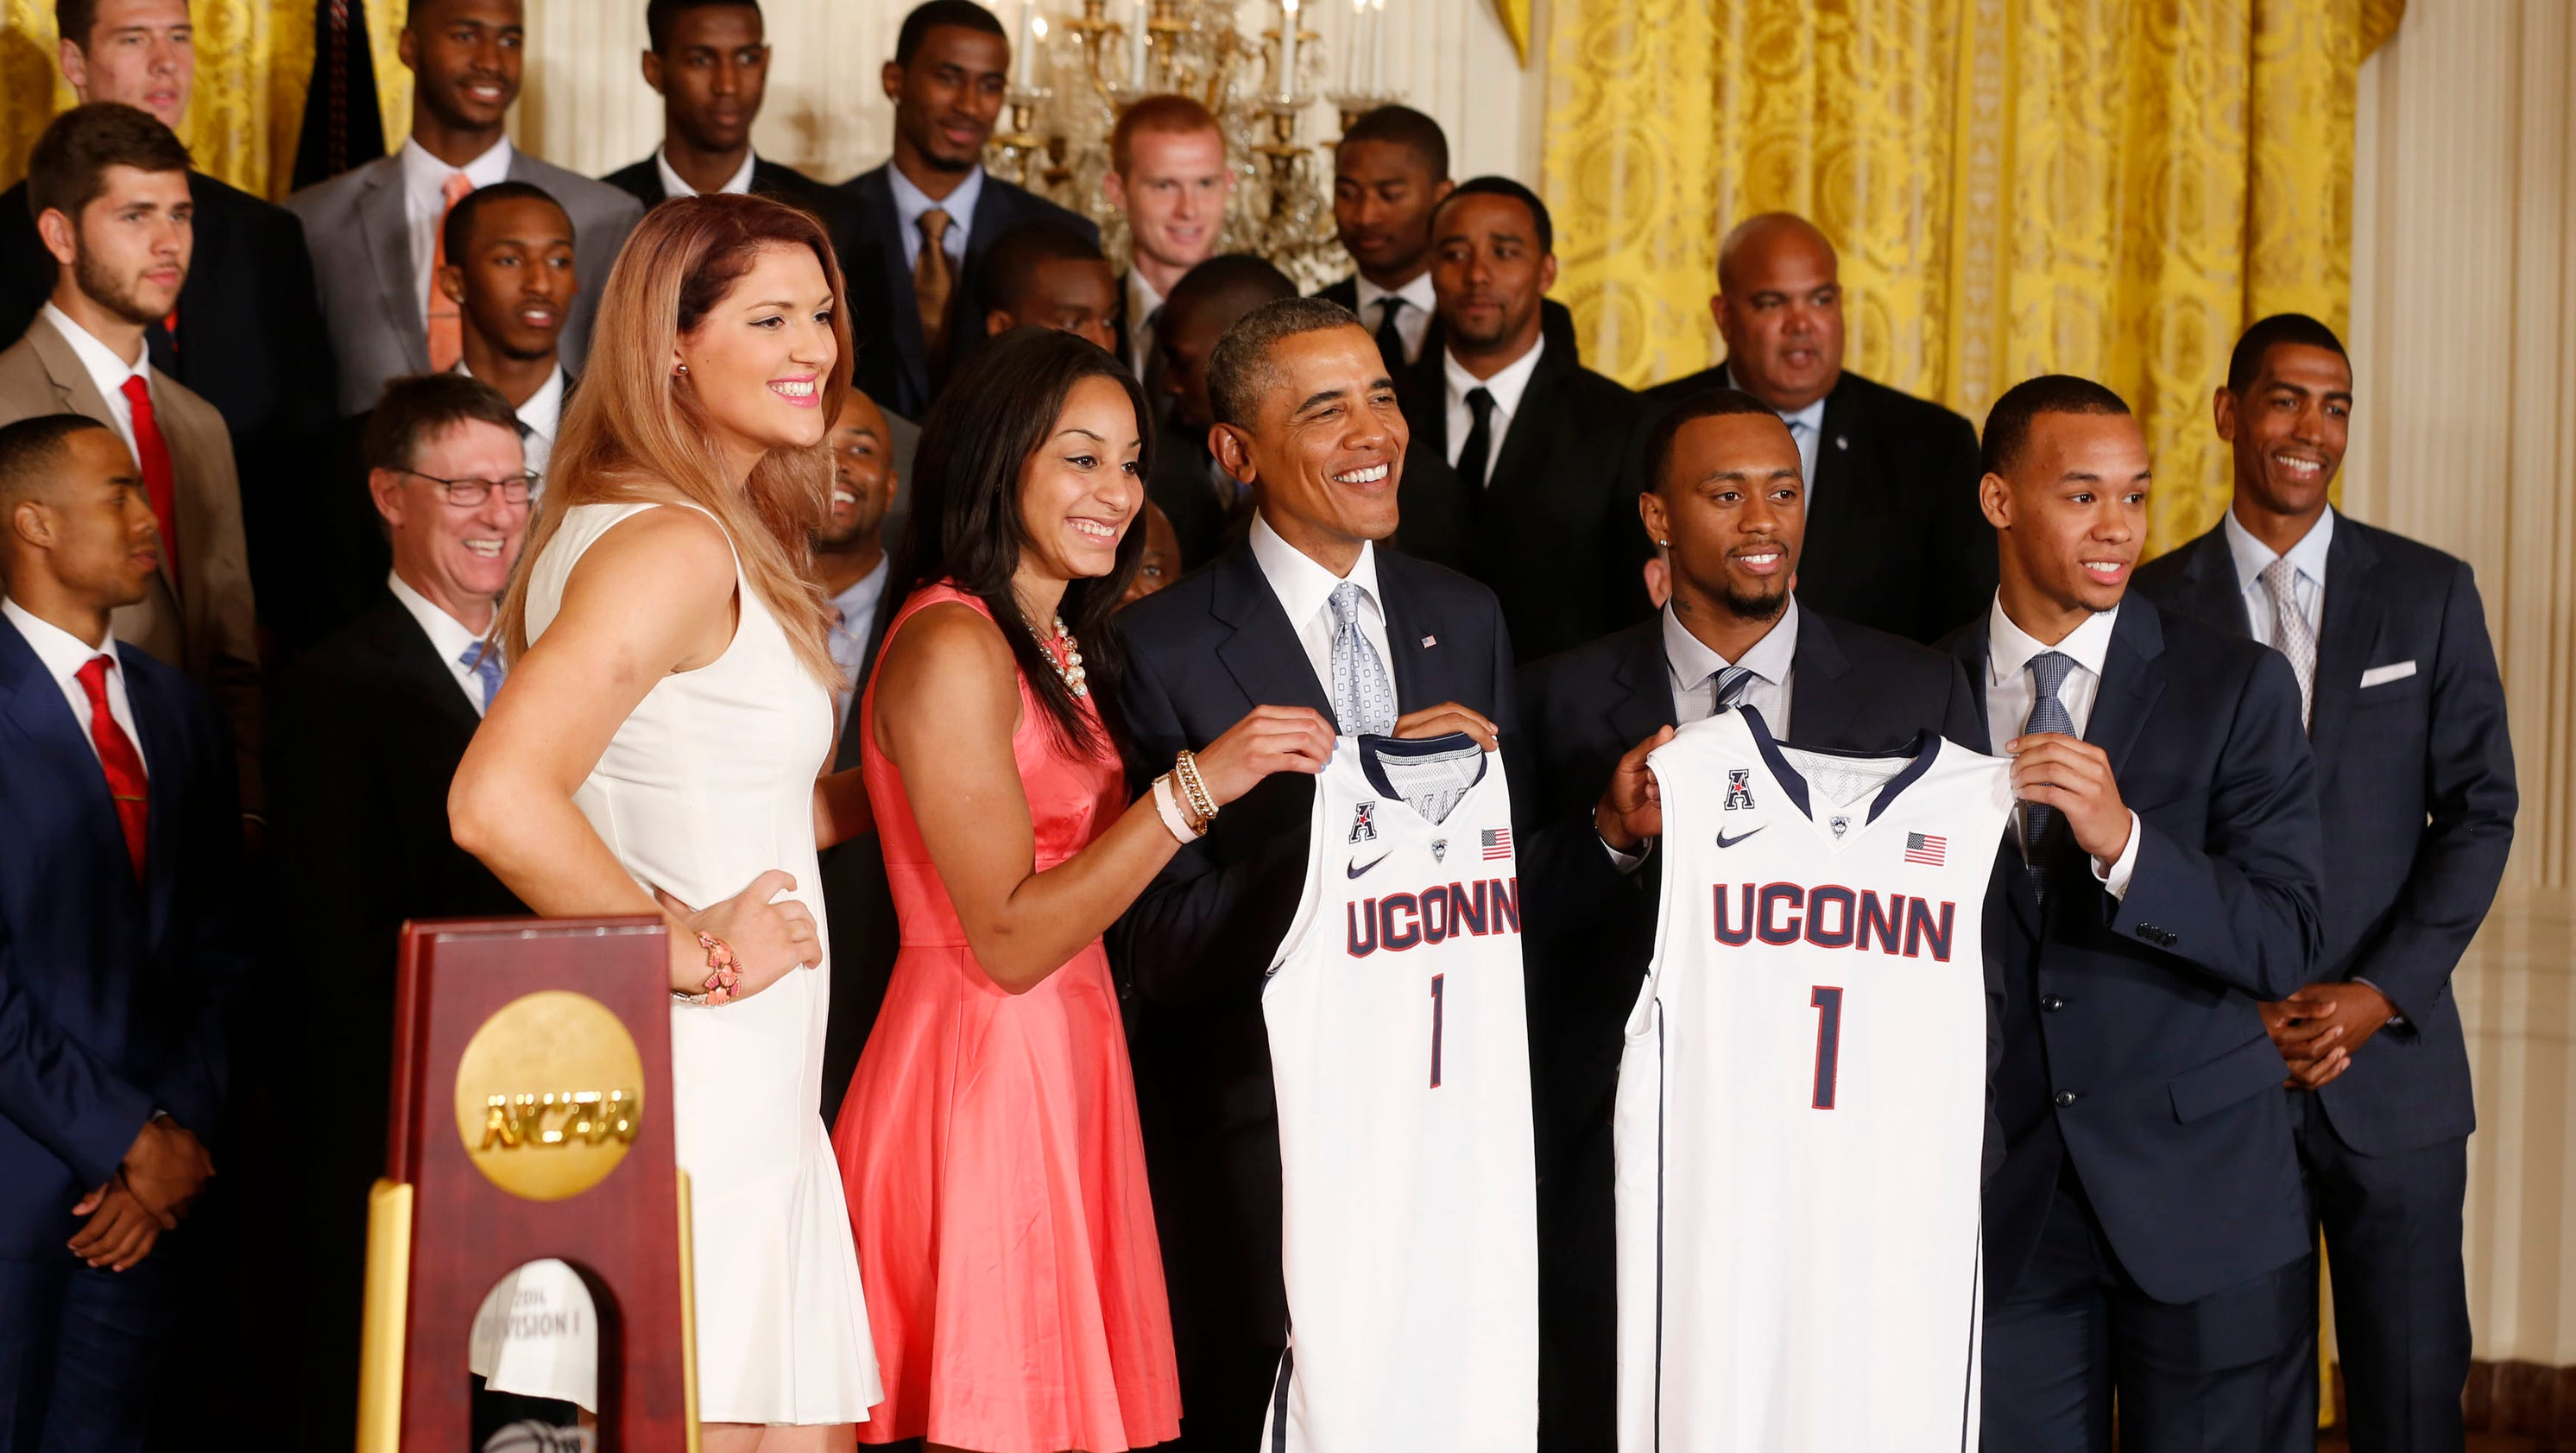 President Obama getting used to honoring UConn basketball